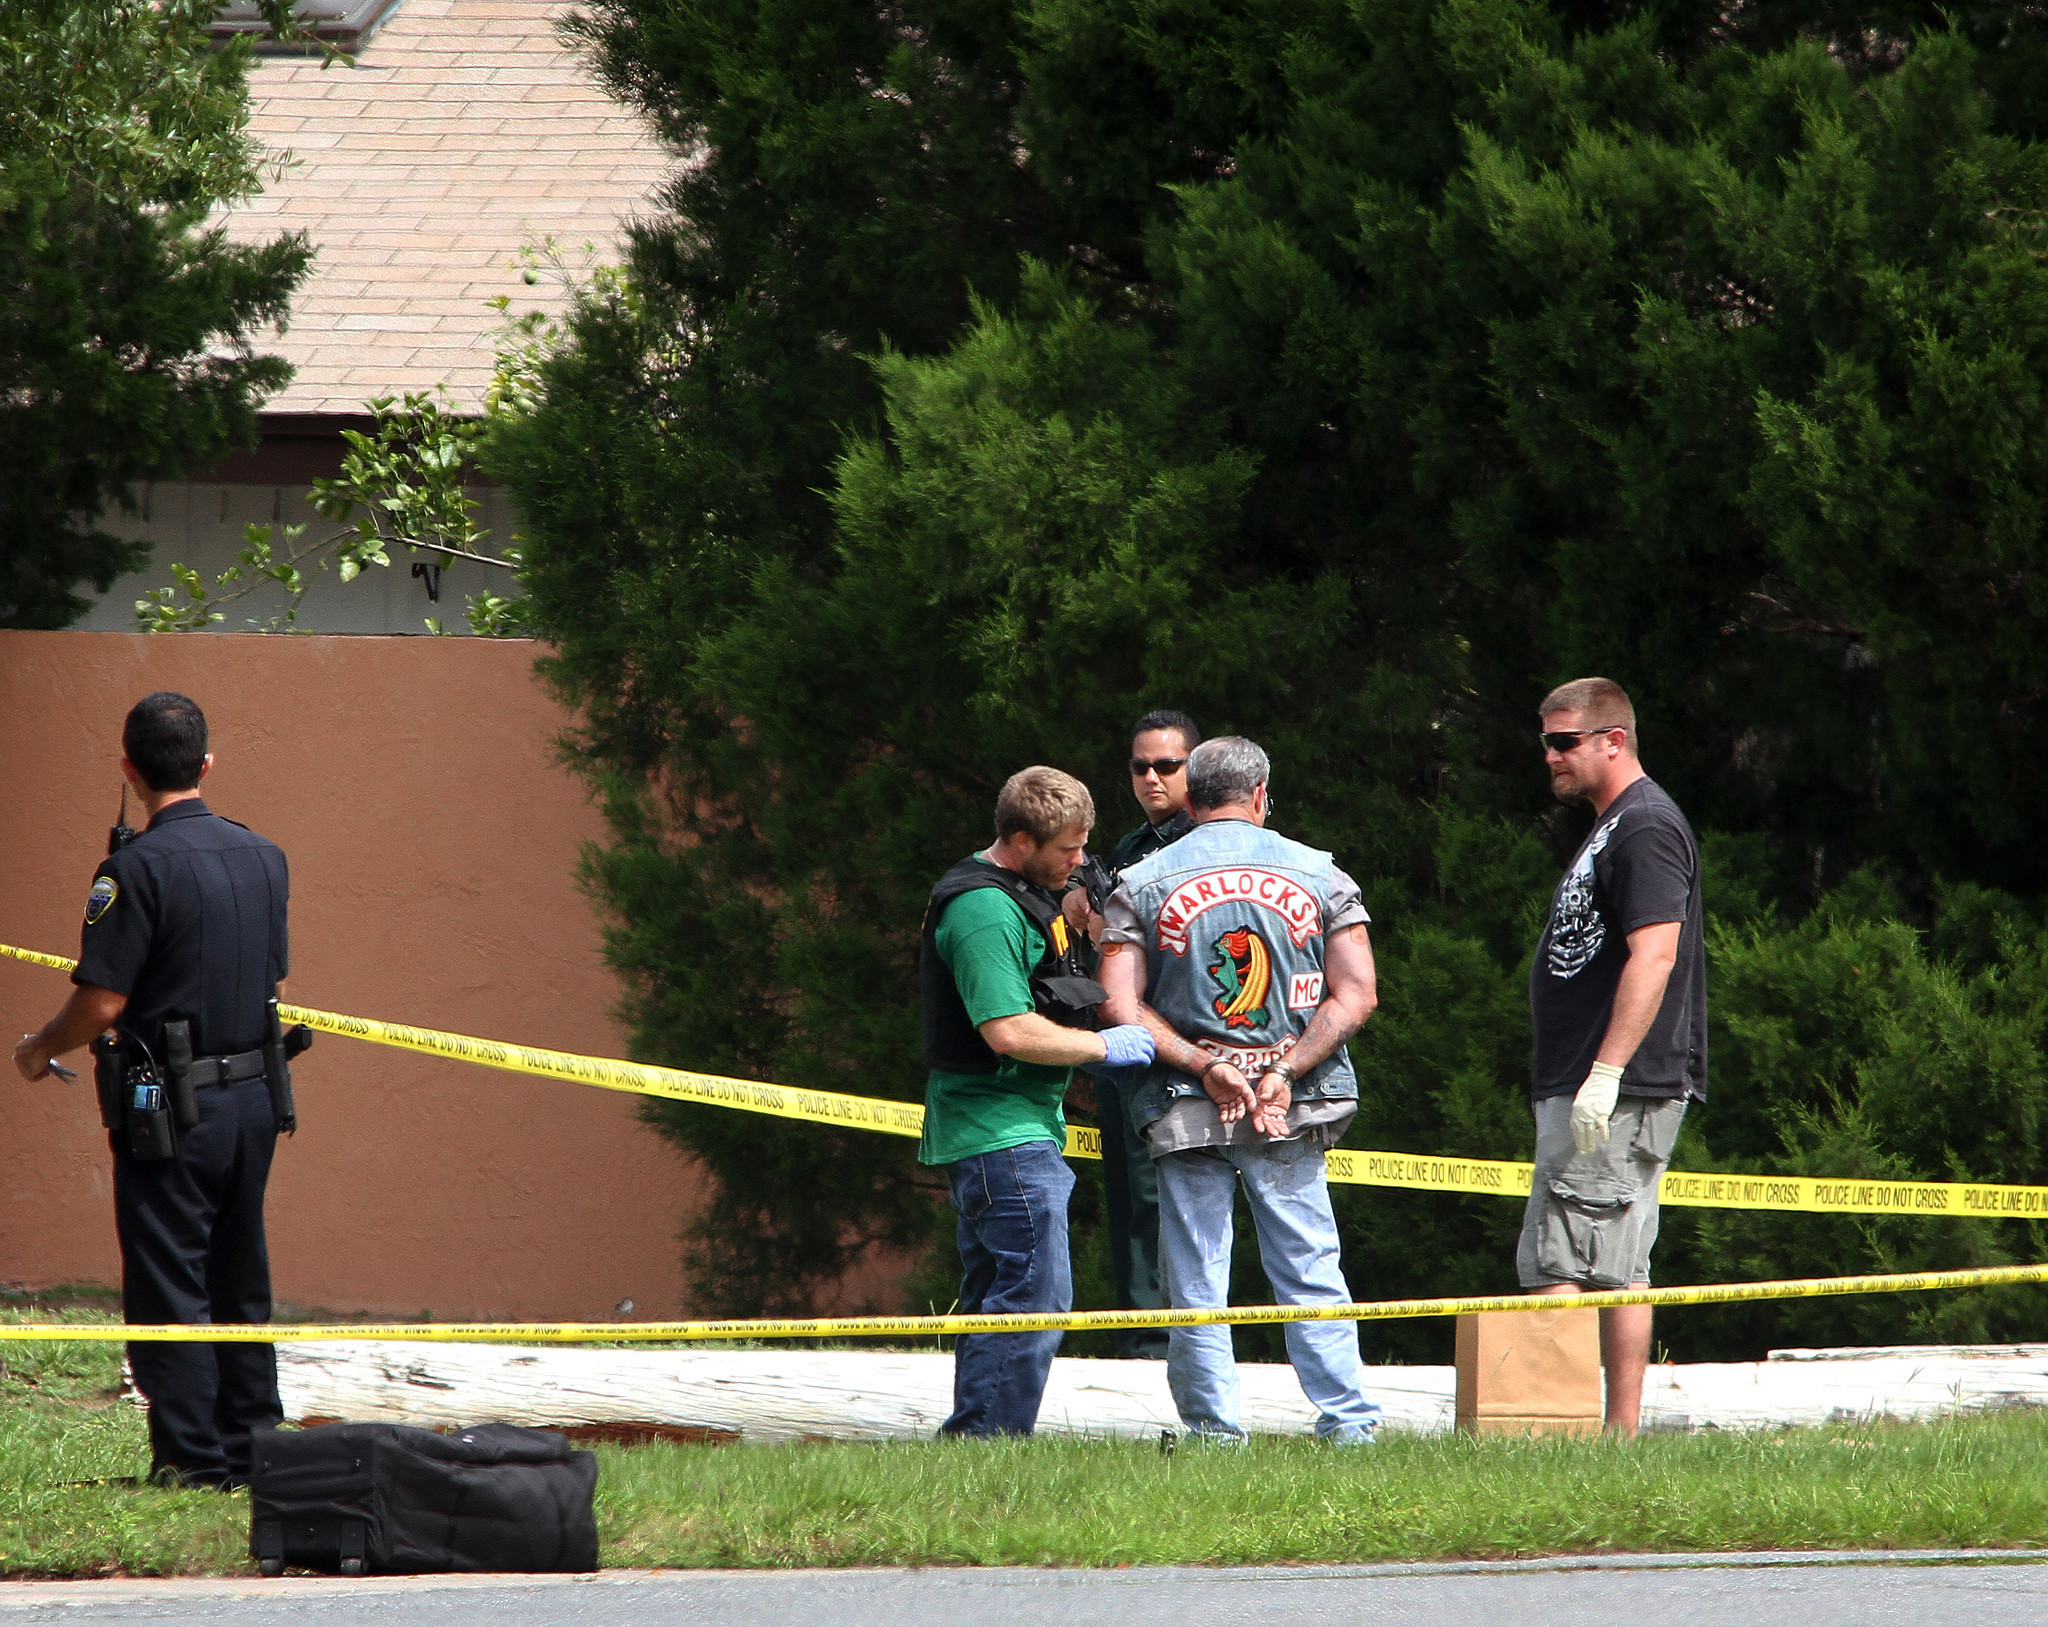 Law enforcement members talk to a man with a Warlocks logo on his jacket at the VFW in Winter Springs on September 30, 2012. A shooting this morning at VFW Post 5405 in Winter Springs has left two people dead and one critically injured, according to police. Several men could be seen in handcuffs as the scene was being investigated.